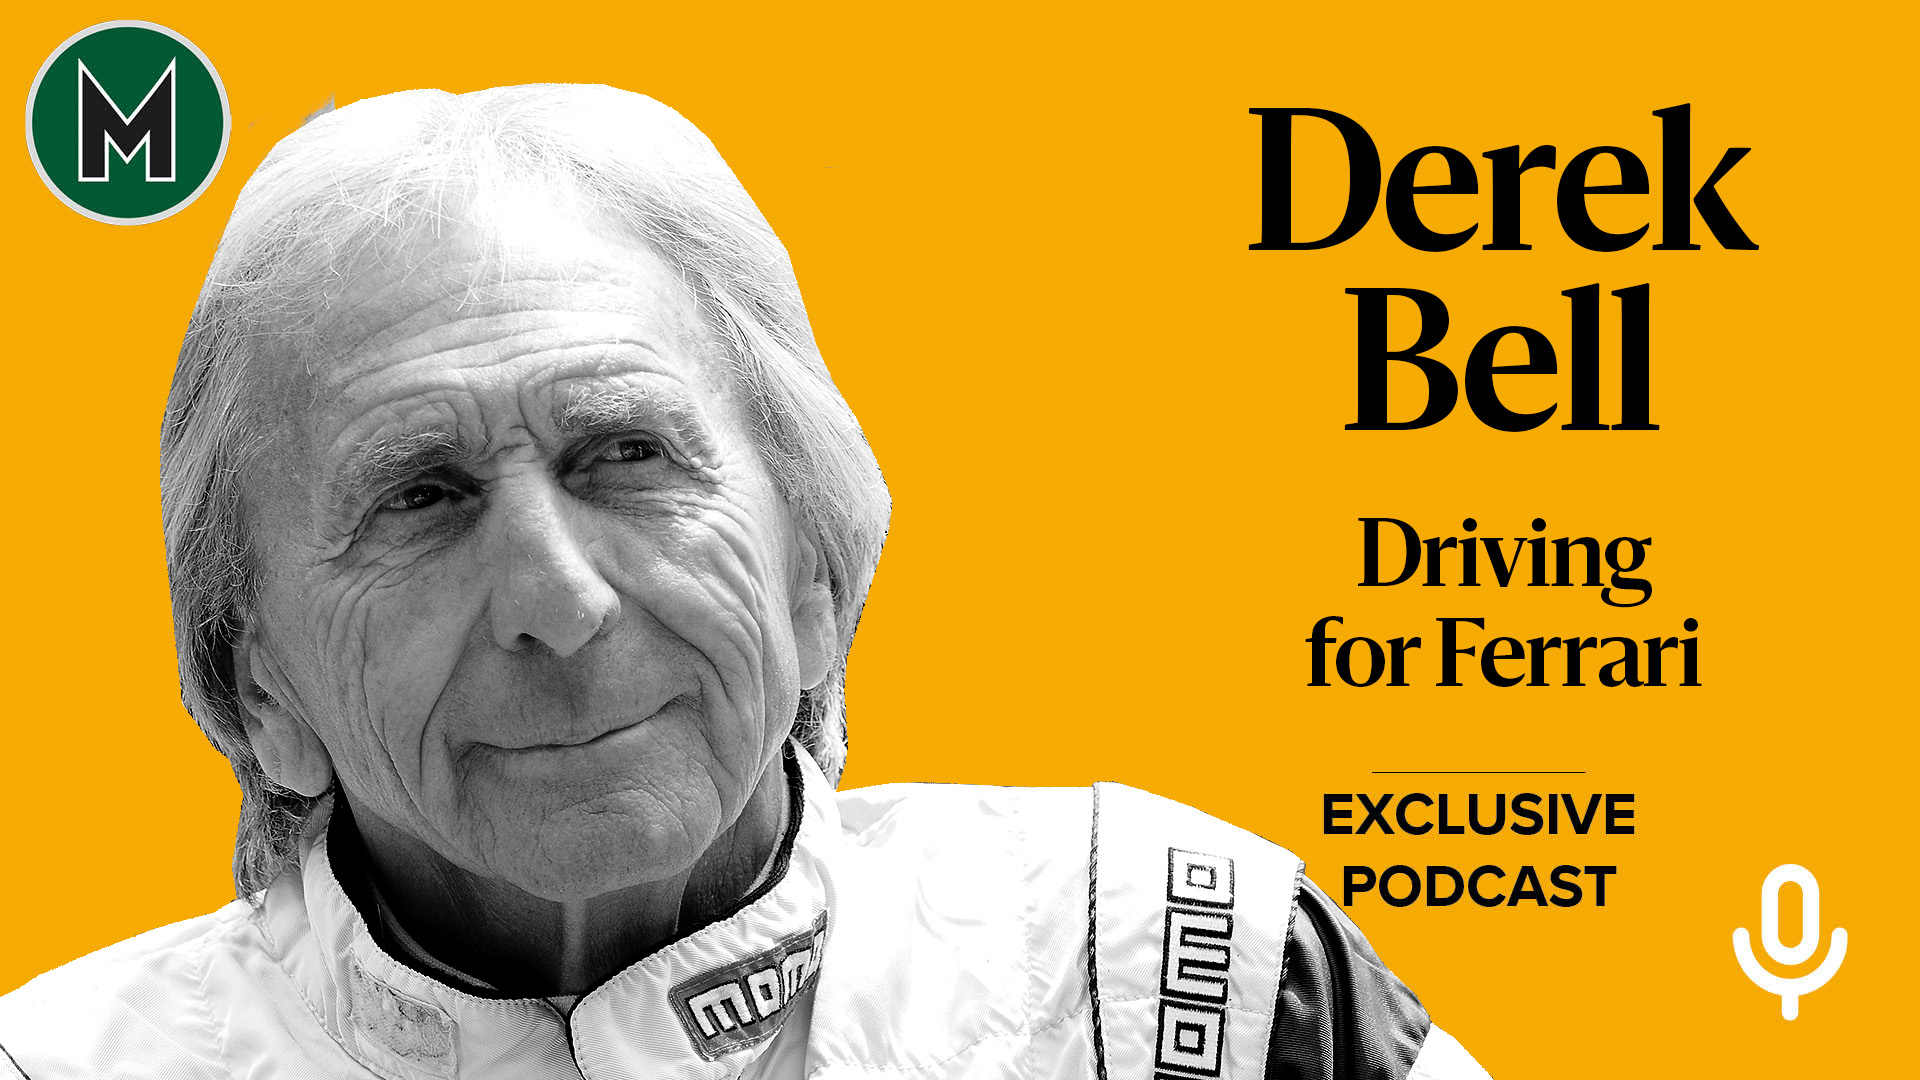 Podcast: Derek Bell, Driving for Ferrari